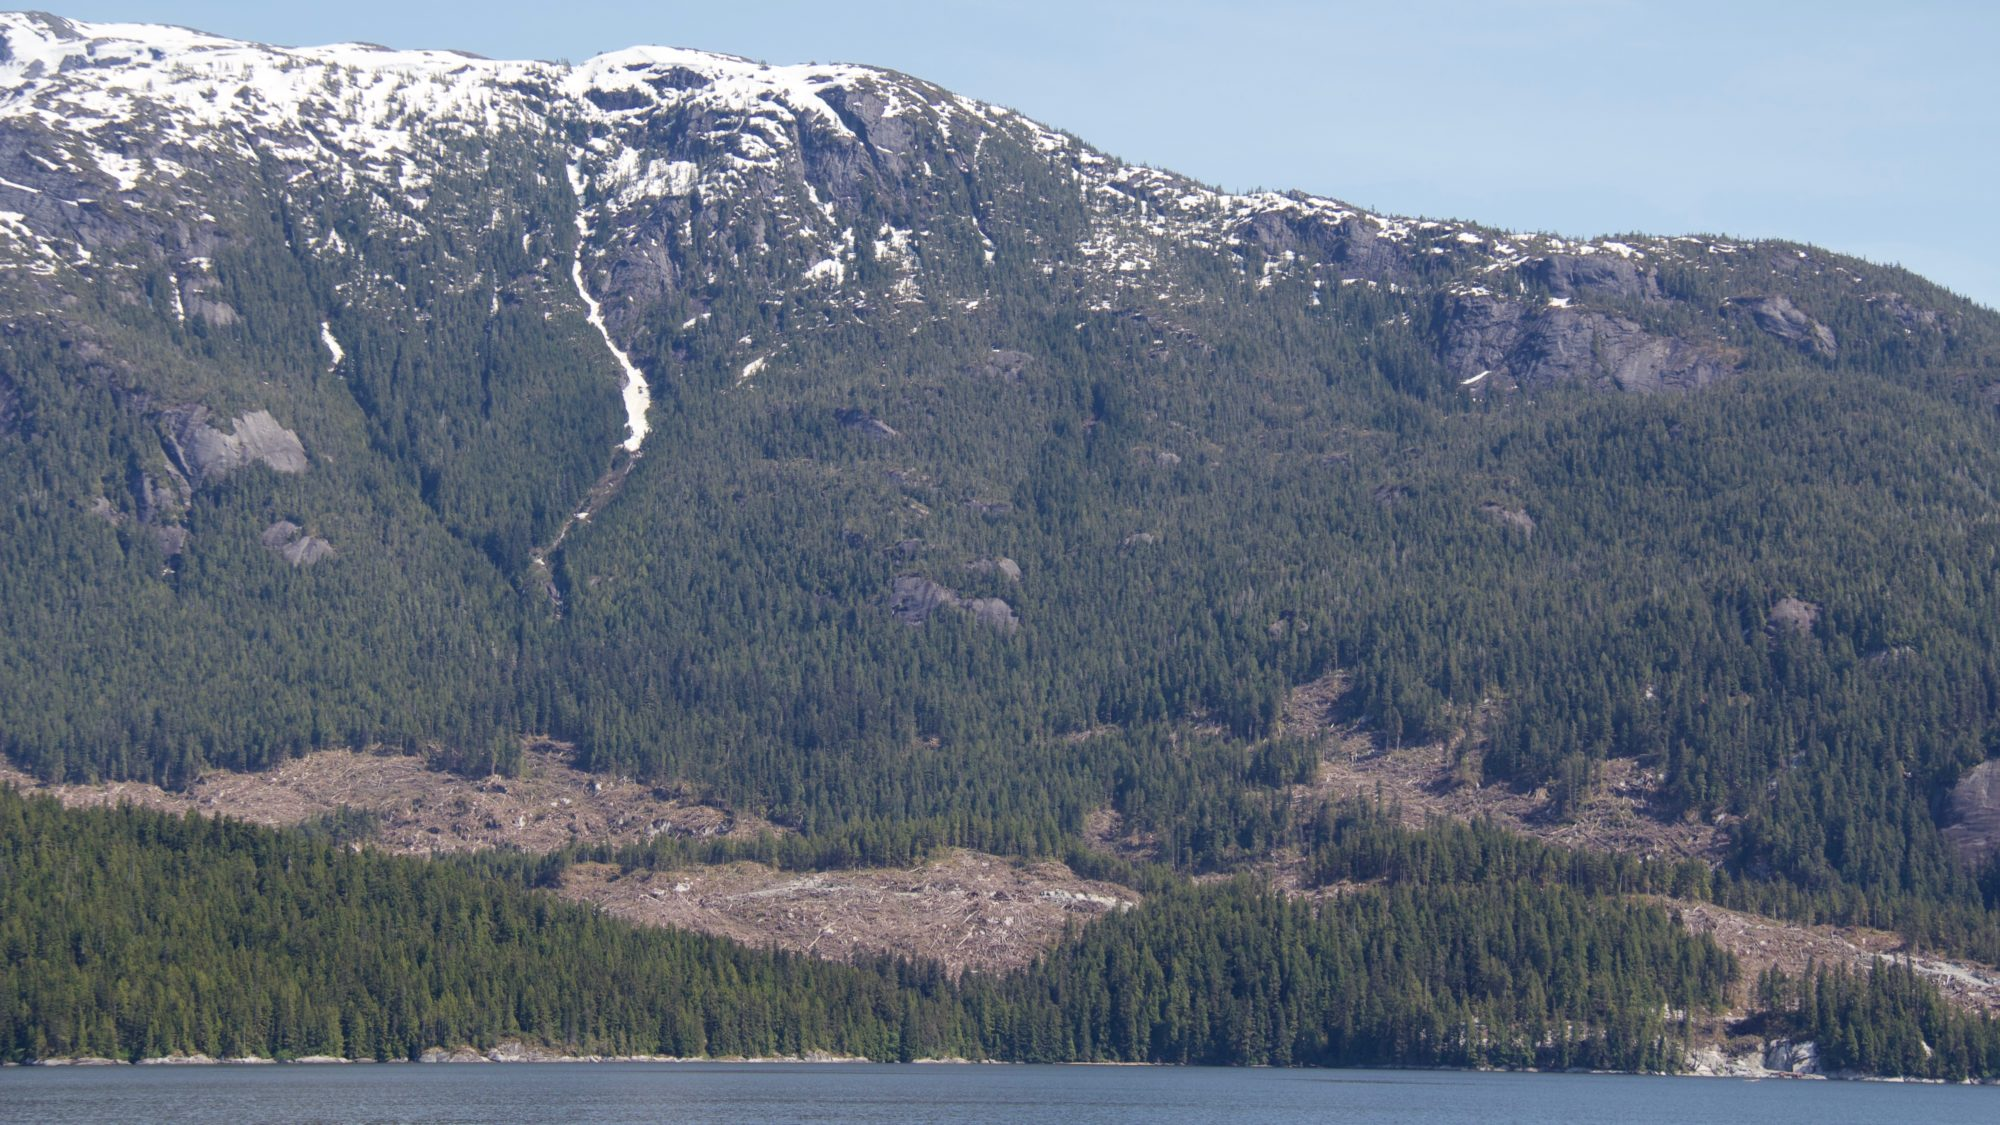 Logging in the Great Bear Rainforest